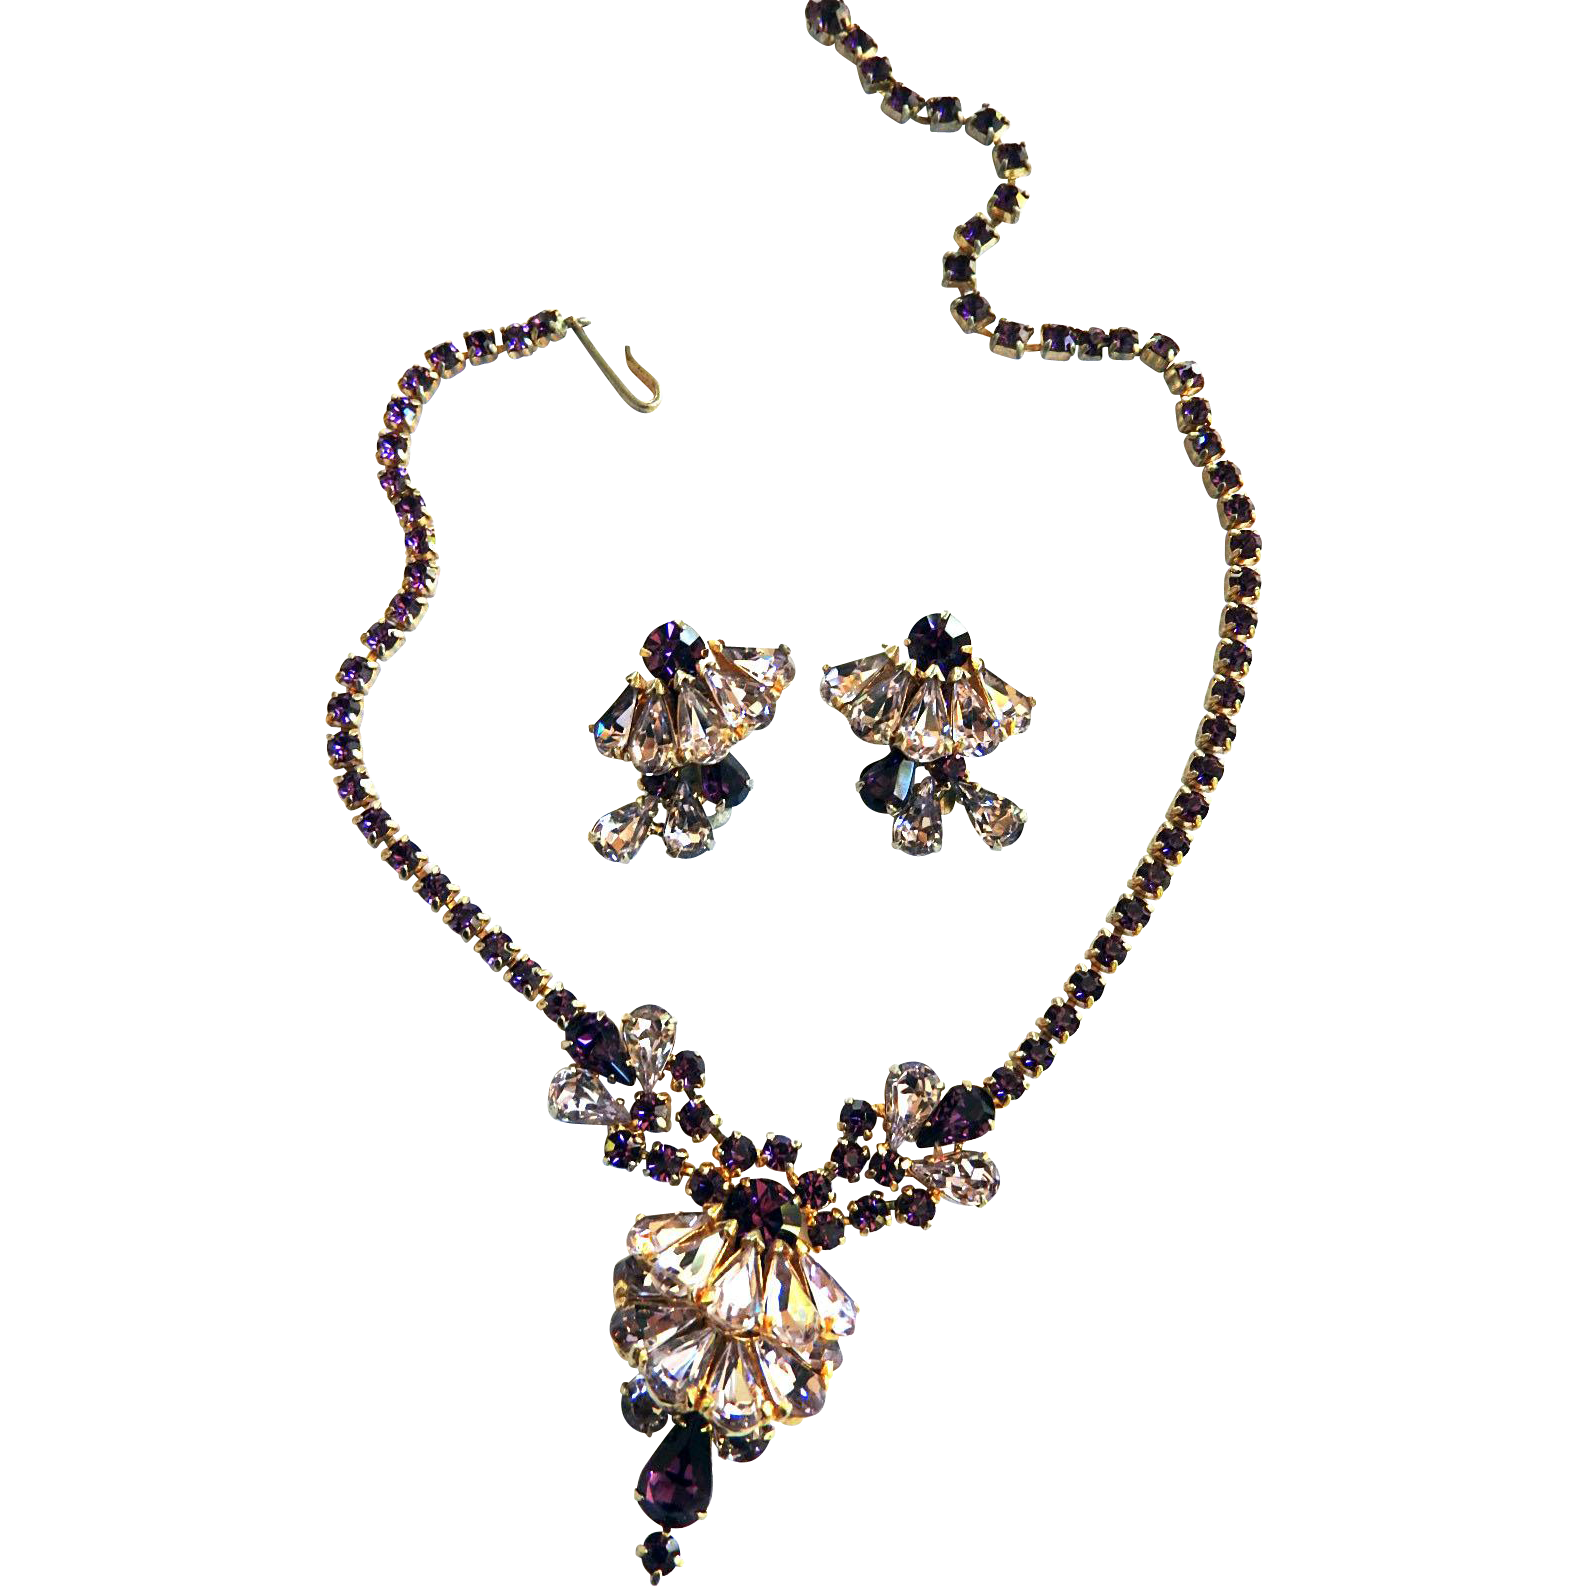 Exquisite Amethyst Layered Designer Necklace and Earrings 50's